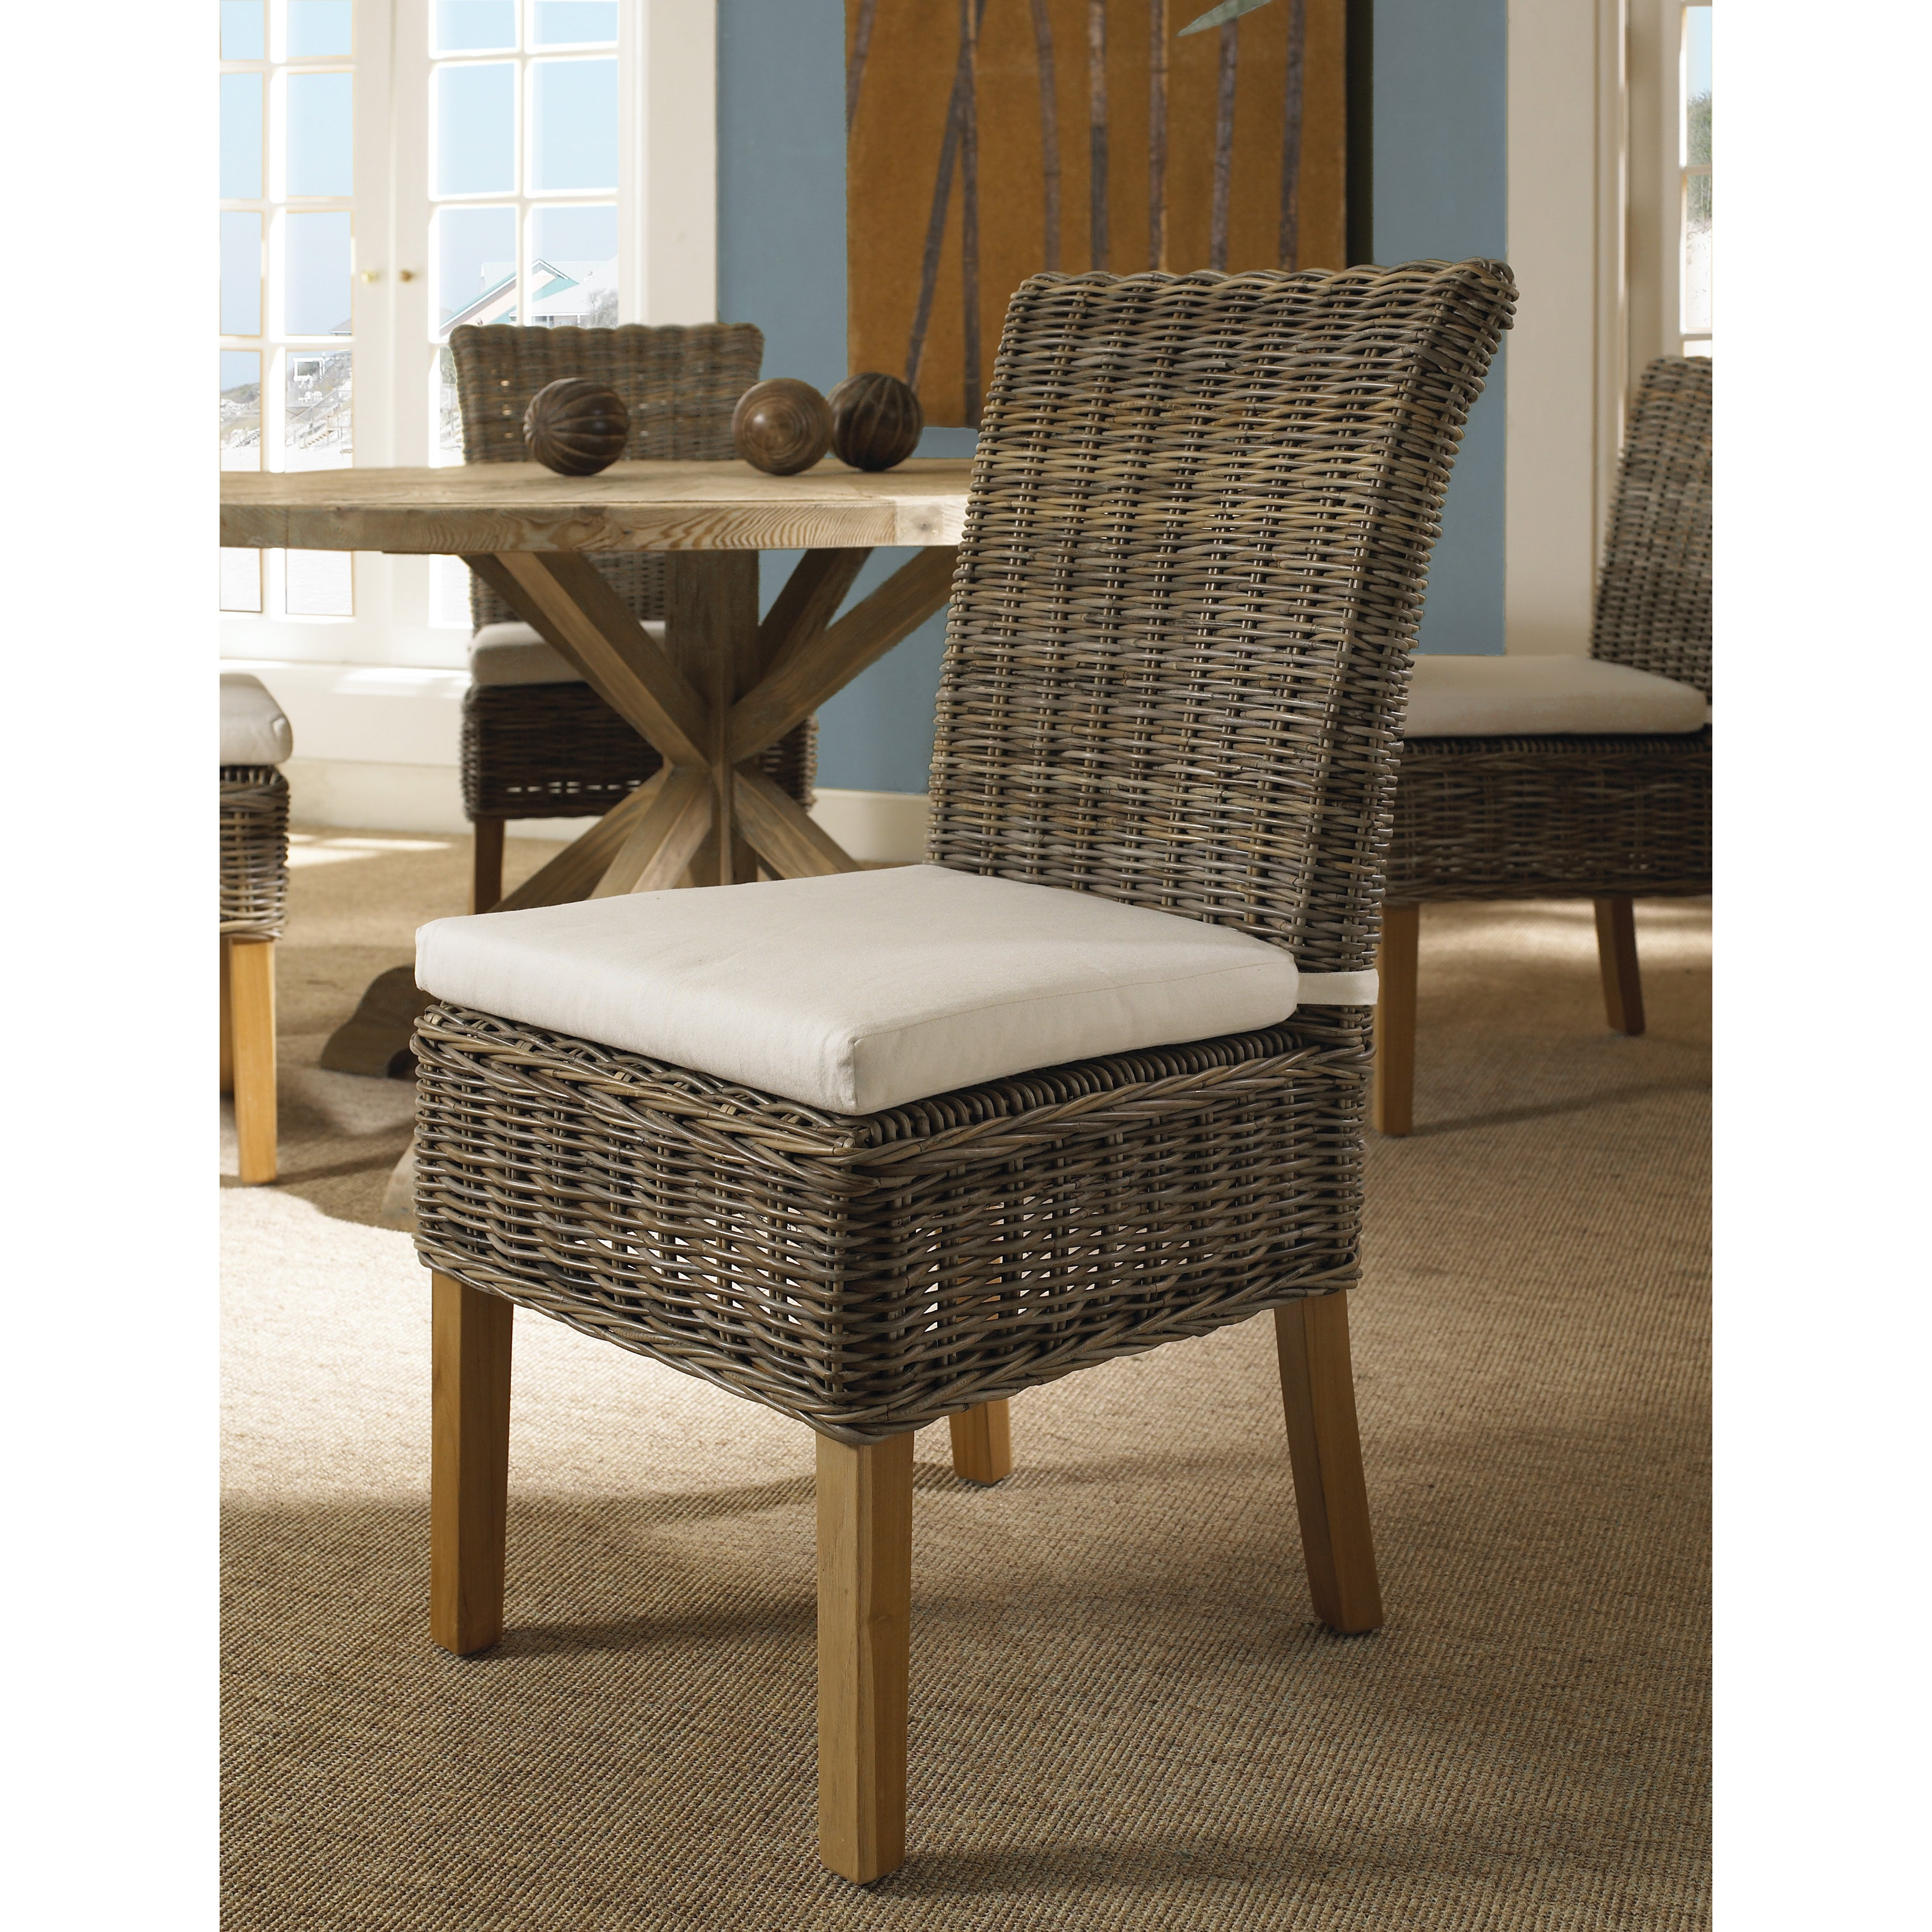 Picture of: Boca Dining Chair Kubu With White Cushion Overstock 9514867